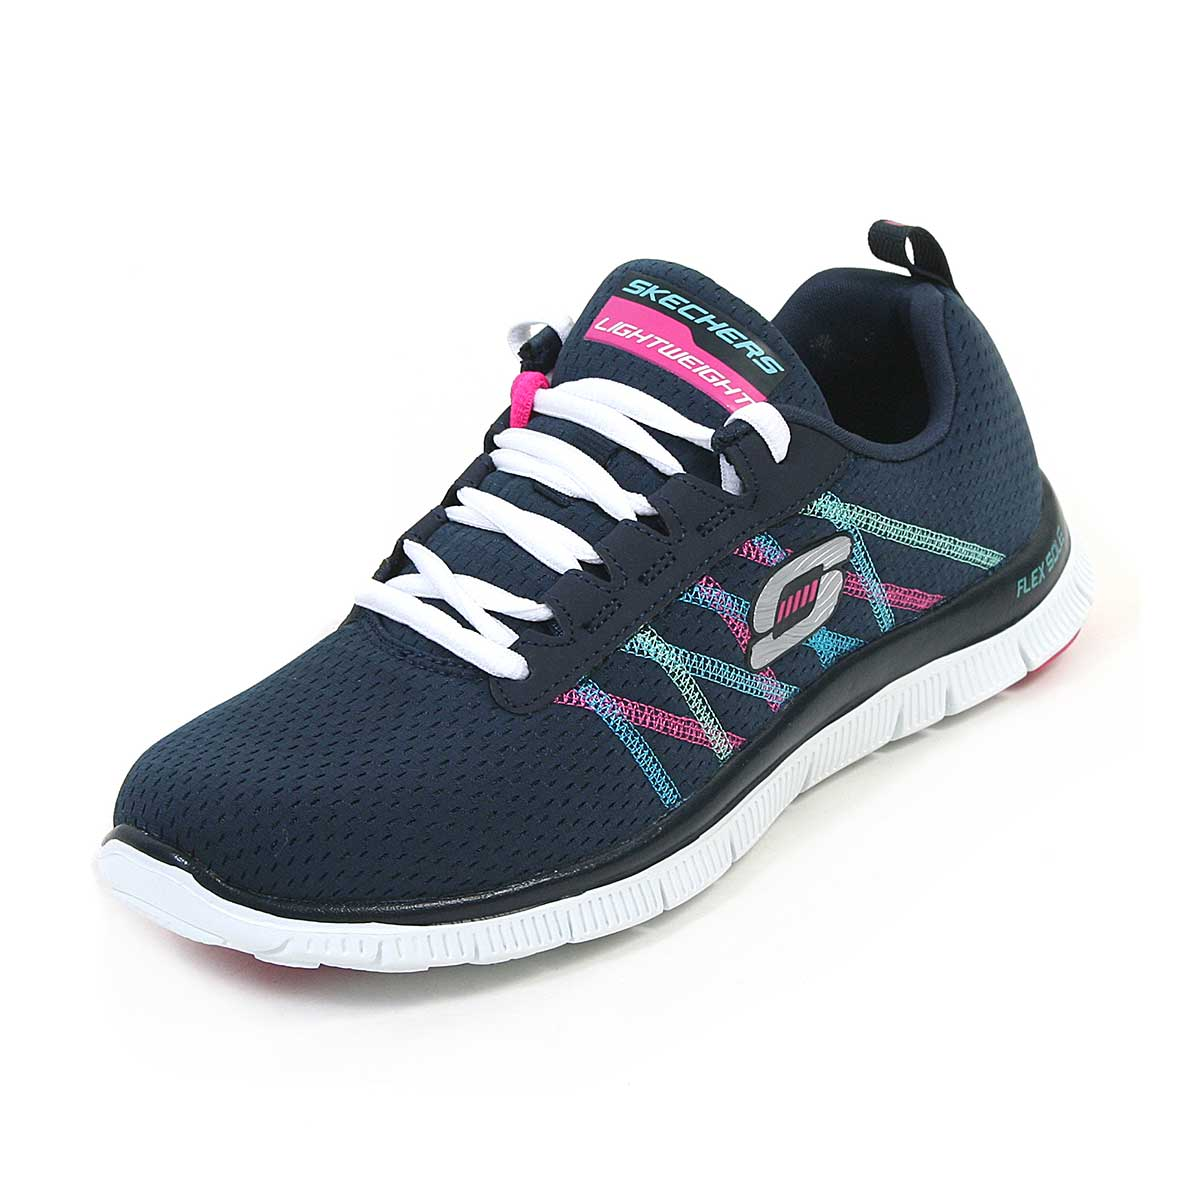 5113bdd8555f Buy Skechers Flex Appeal Womens Running Shoes (Navy / Multi) Online